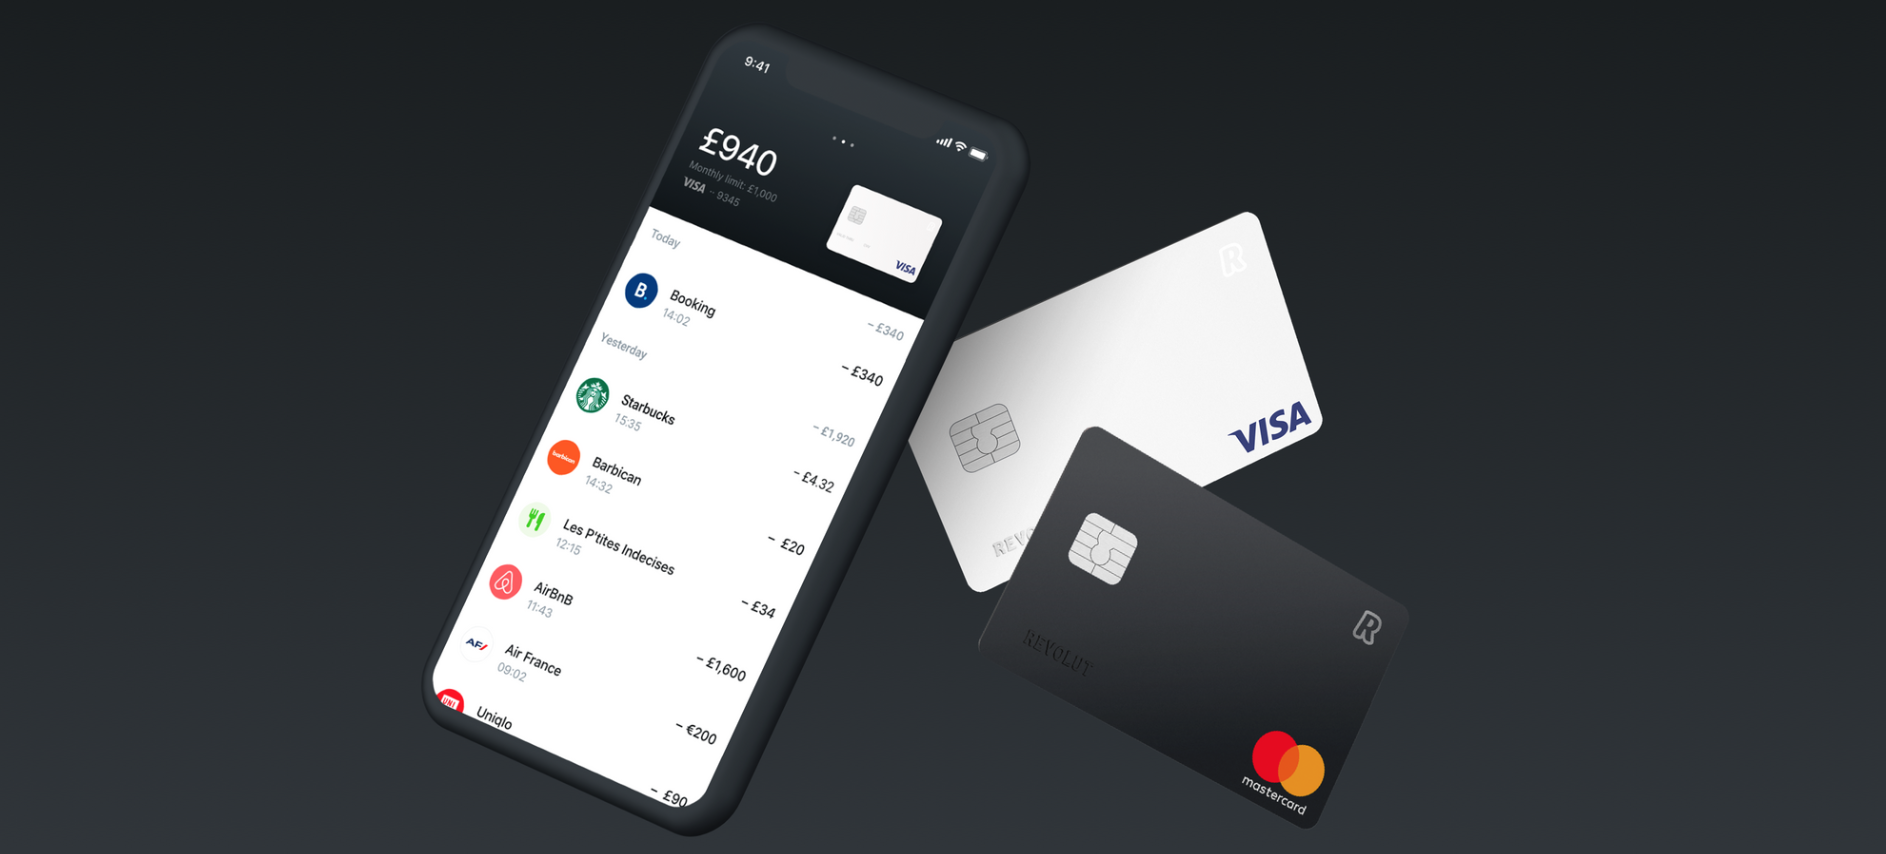 Revolut for Business, Image via Revolut